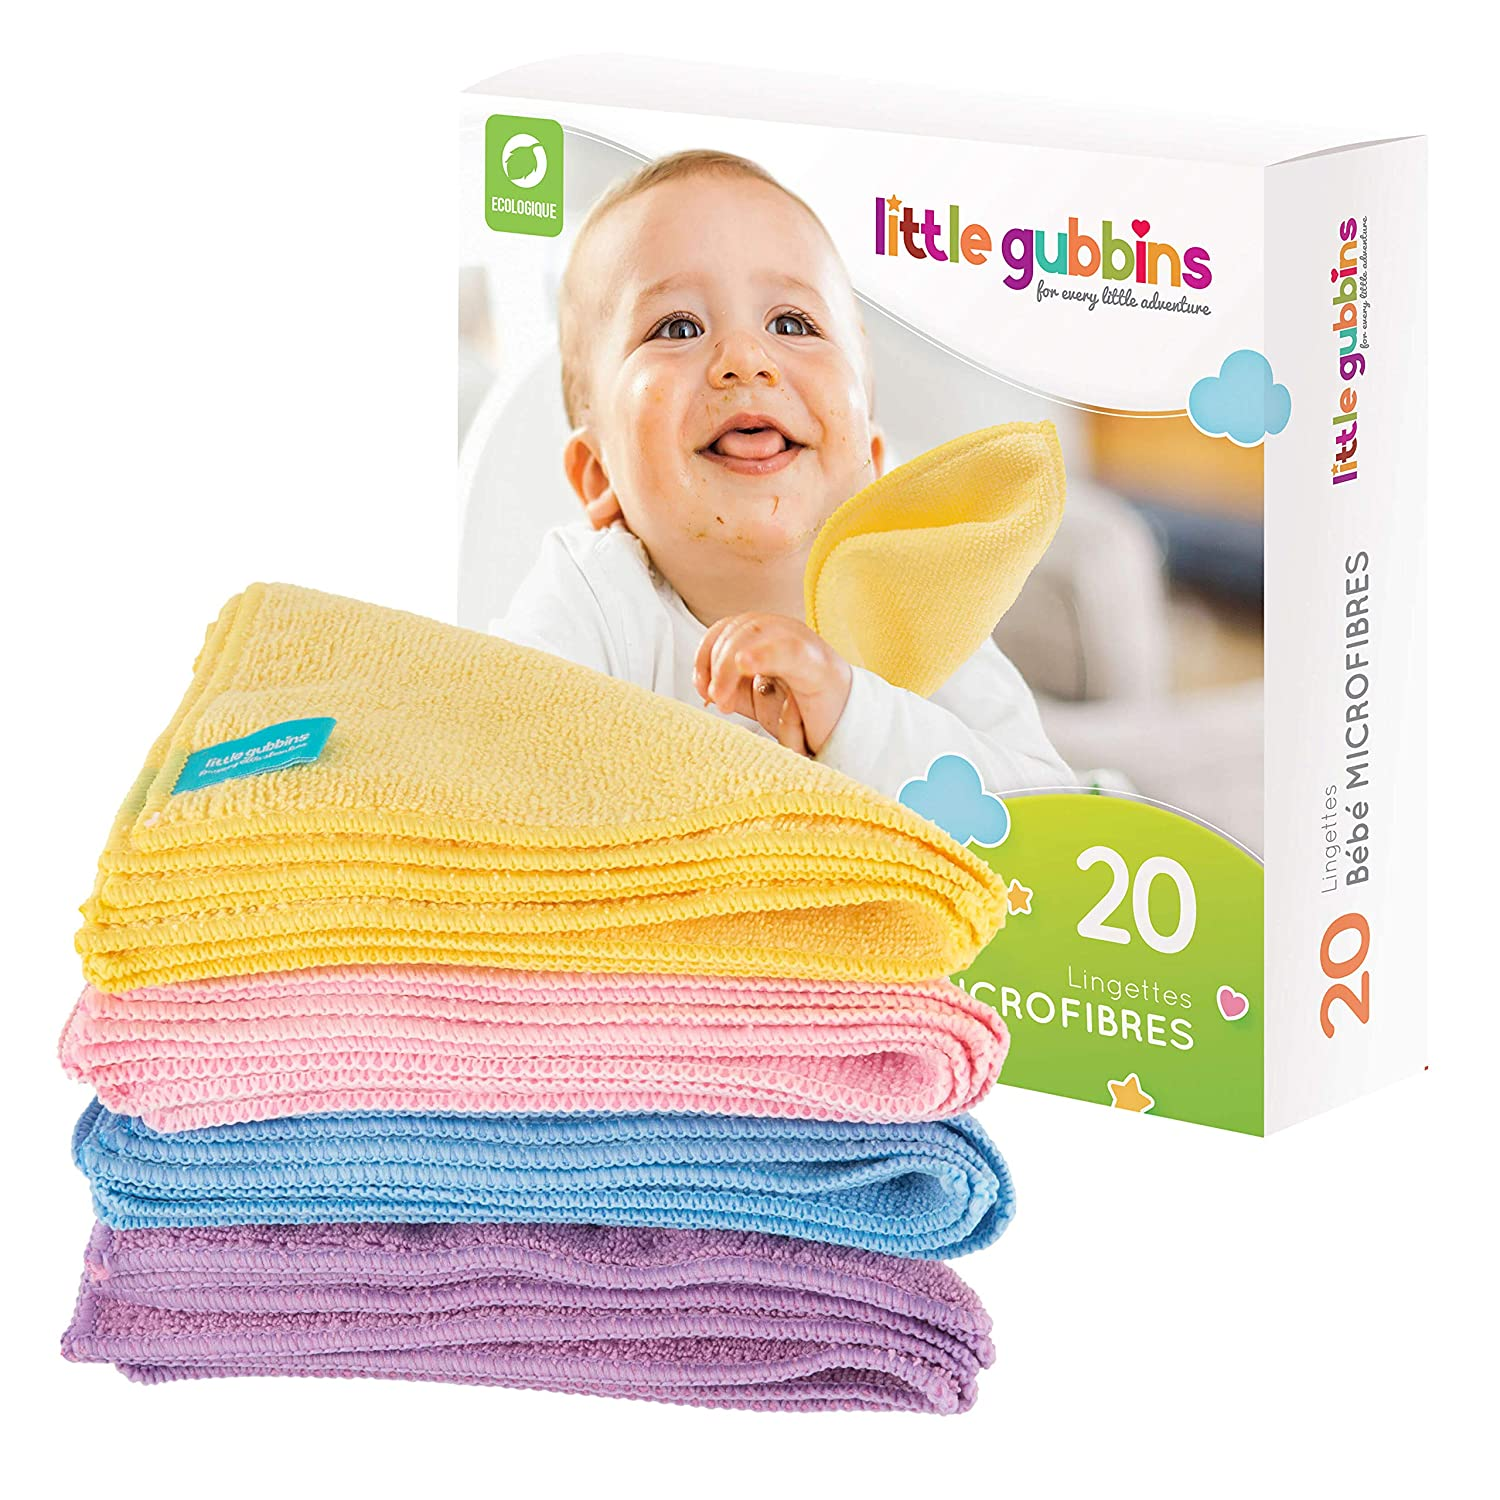 20 x Microfibre Baby Wipes by Little Gubbins | Pack of Dry, Unscented Cloths